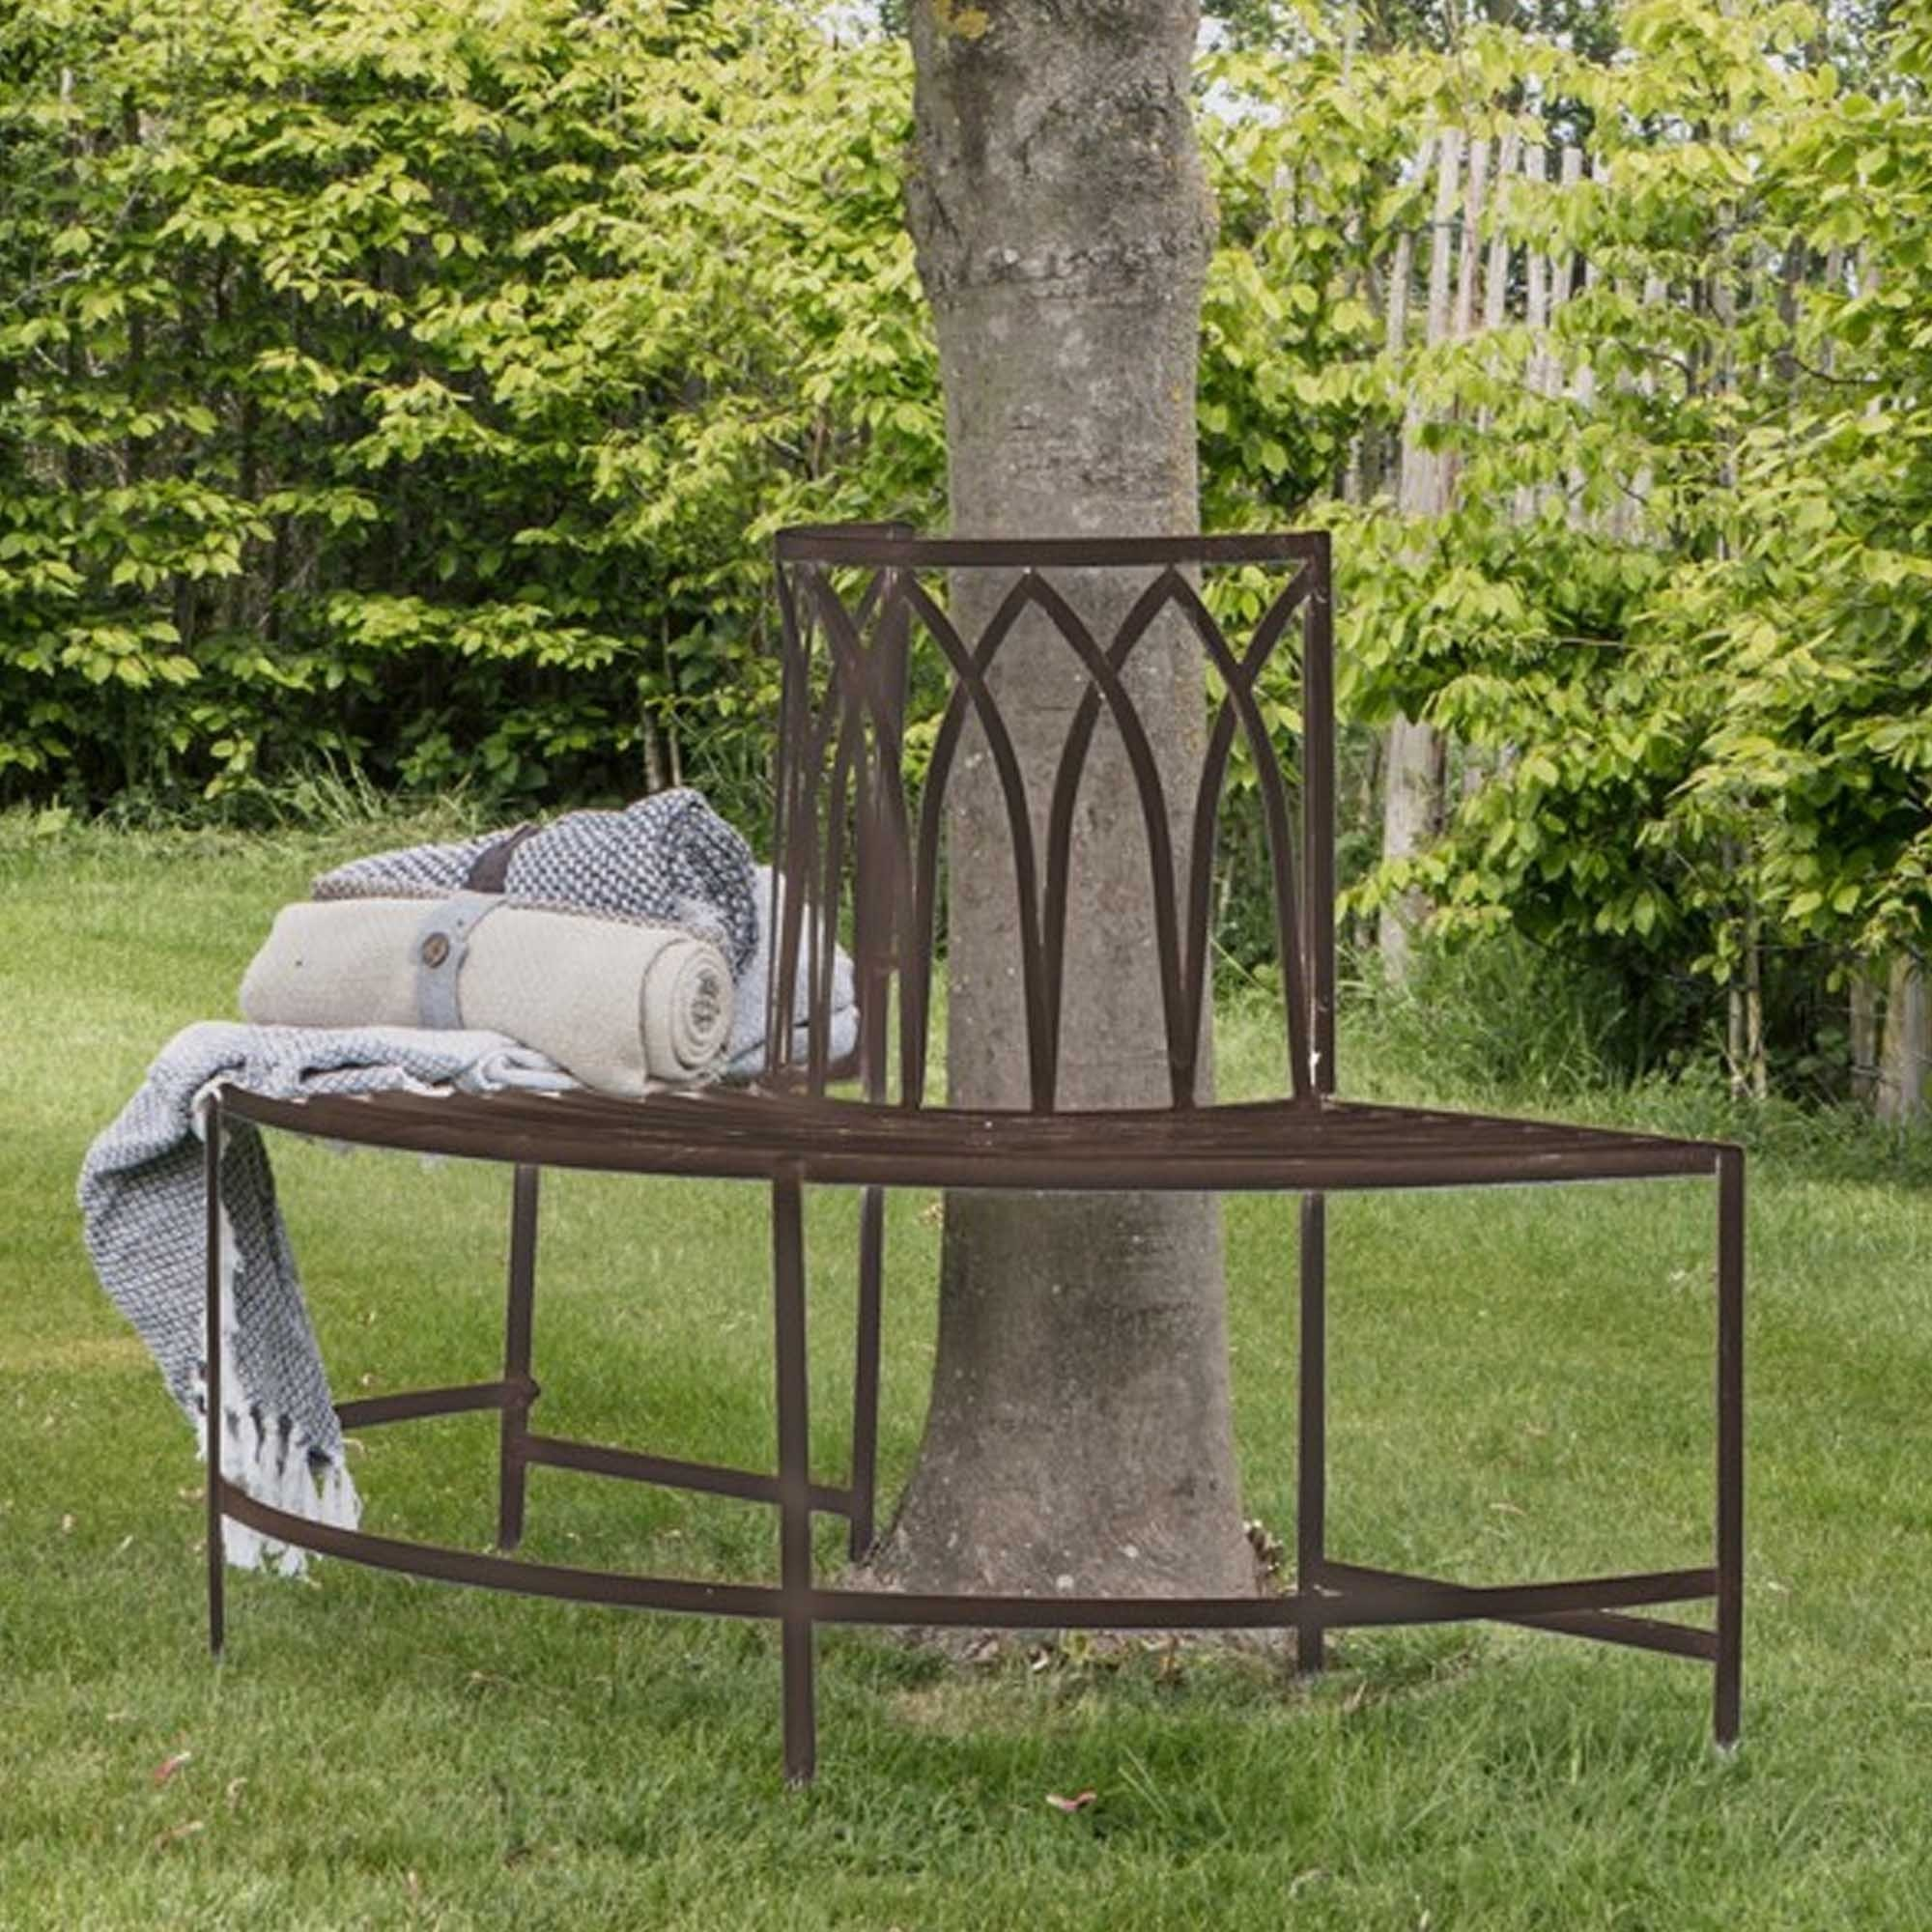 Picture of: Alberoni Outdoor Tree Bench Seat Ember Garden Bench Curved Bench